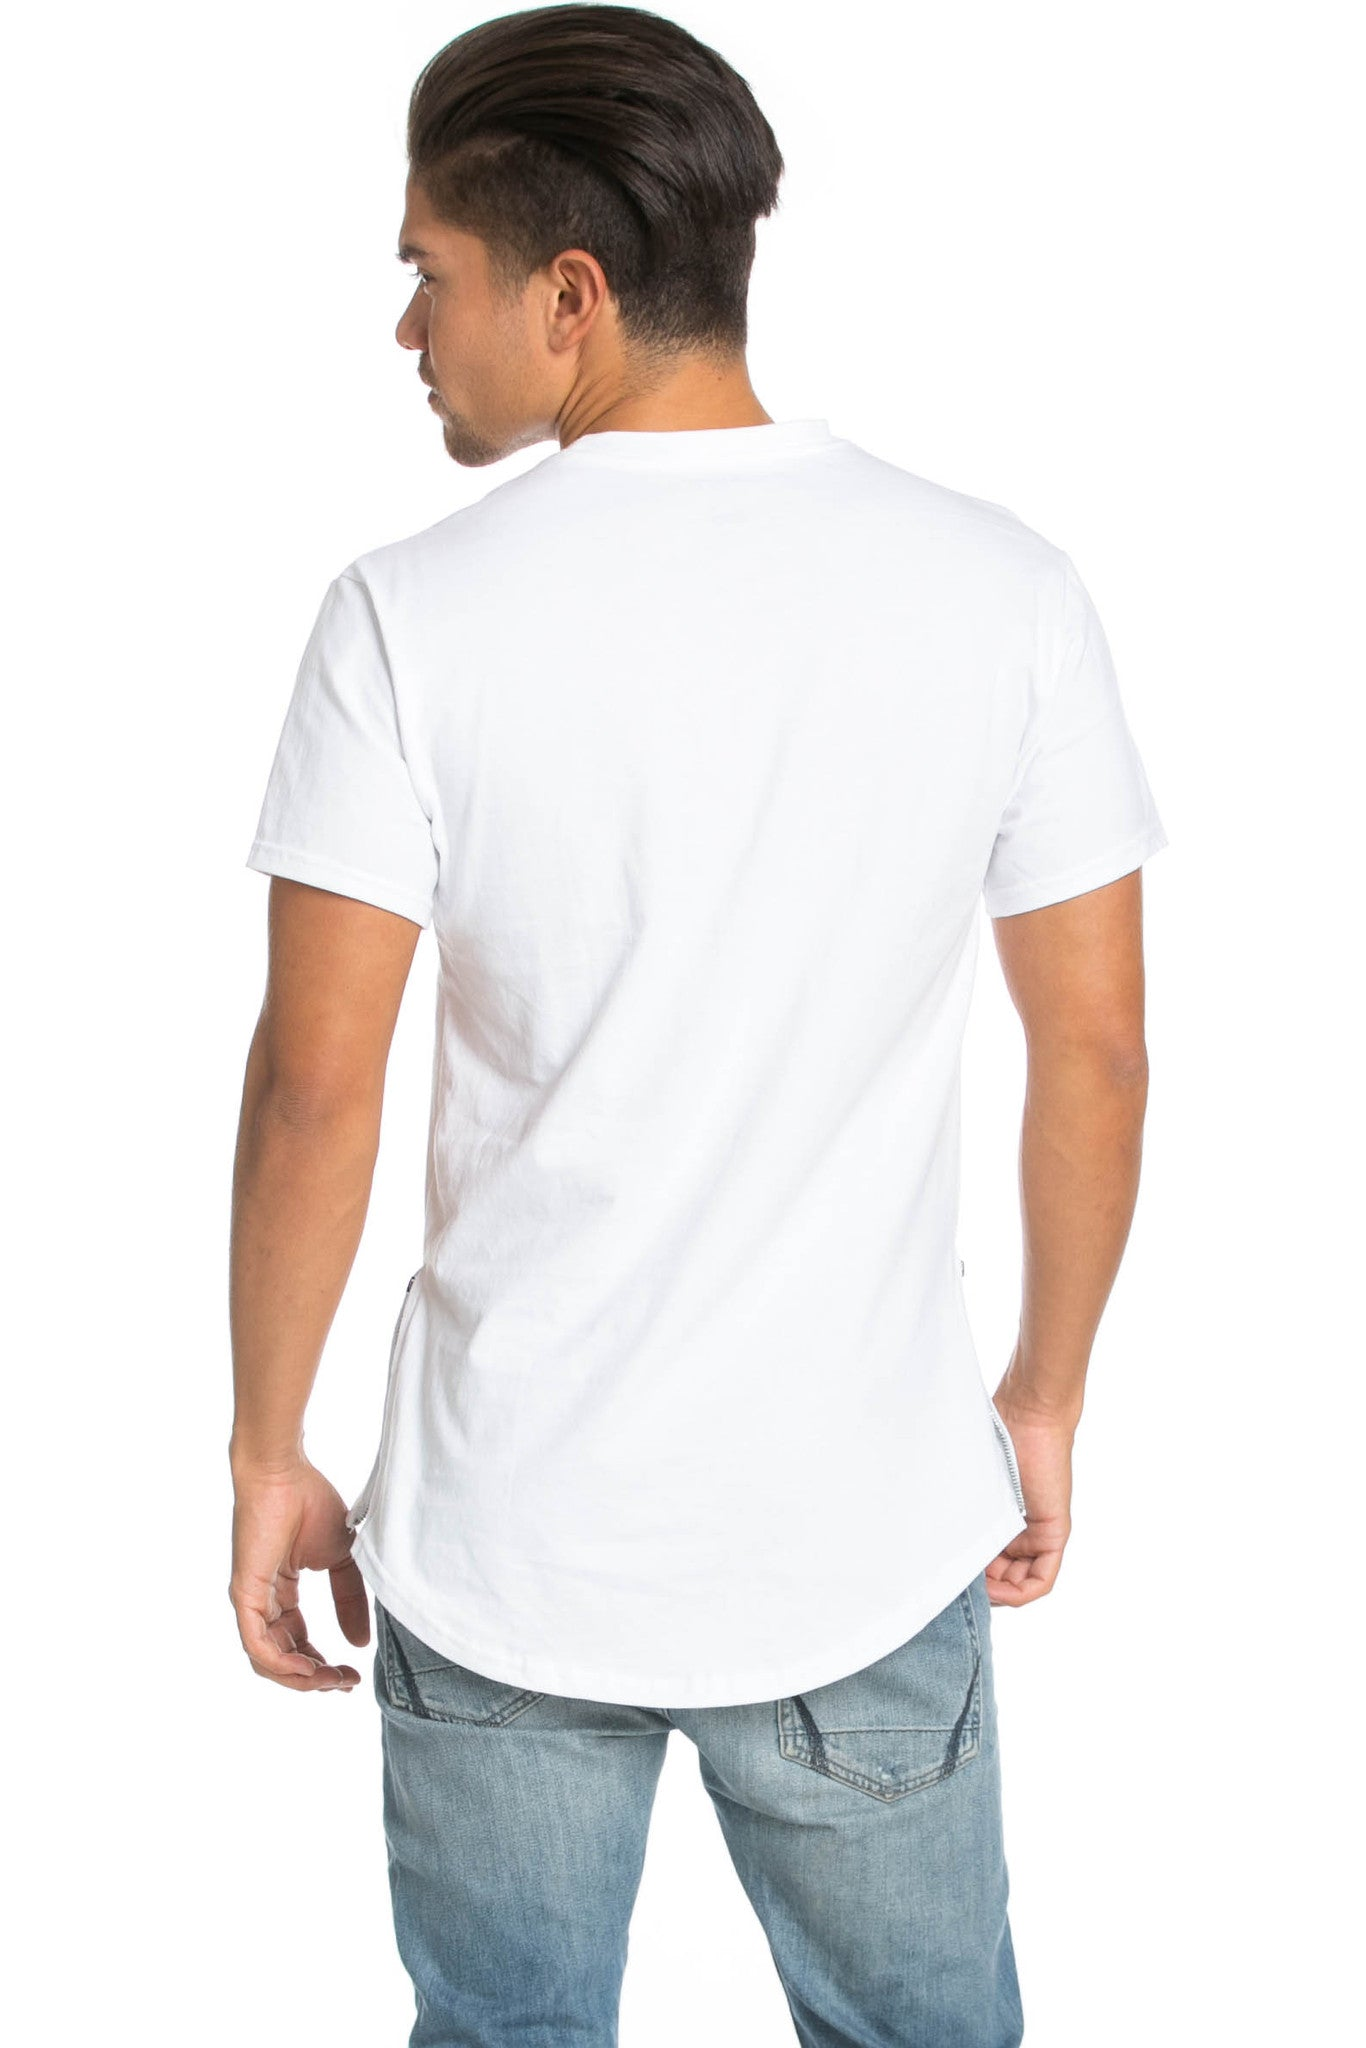 Men's Basic Zipper White T-Shirt - Tops - My Yuccie - 3